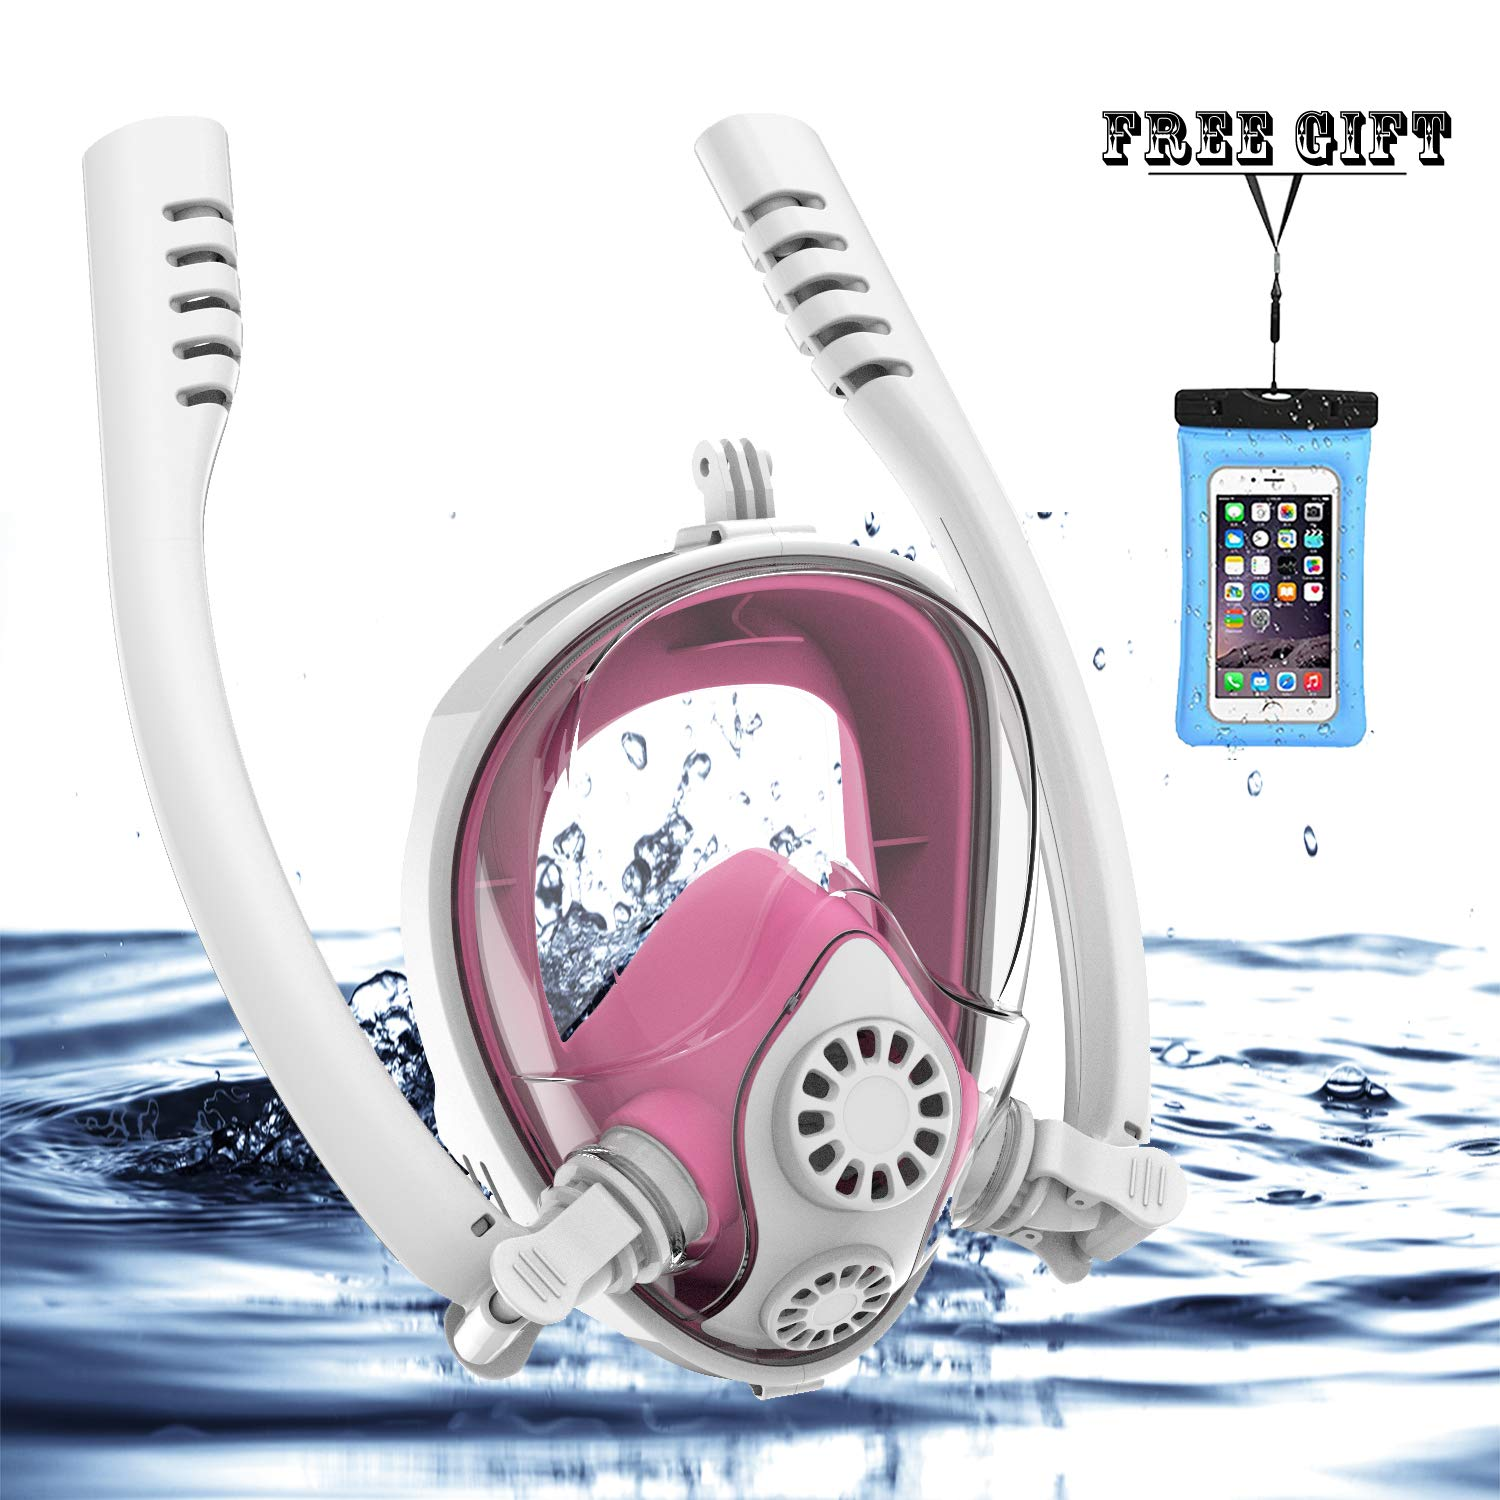 Full Face Snorkel Mask, HJKB K2 Backstroke Swiming Snorkeling Mask with Double Tubes and 180° Panoramic Viewing, Zero Fog and Anti Leak Guarantee with Camera Mount for Adult (Pink, Large) by Jahuite (Image #1)